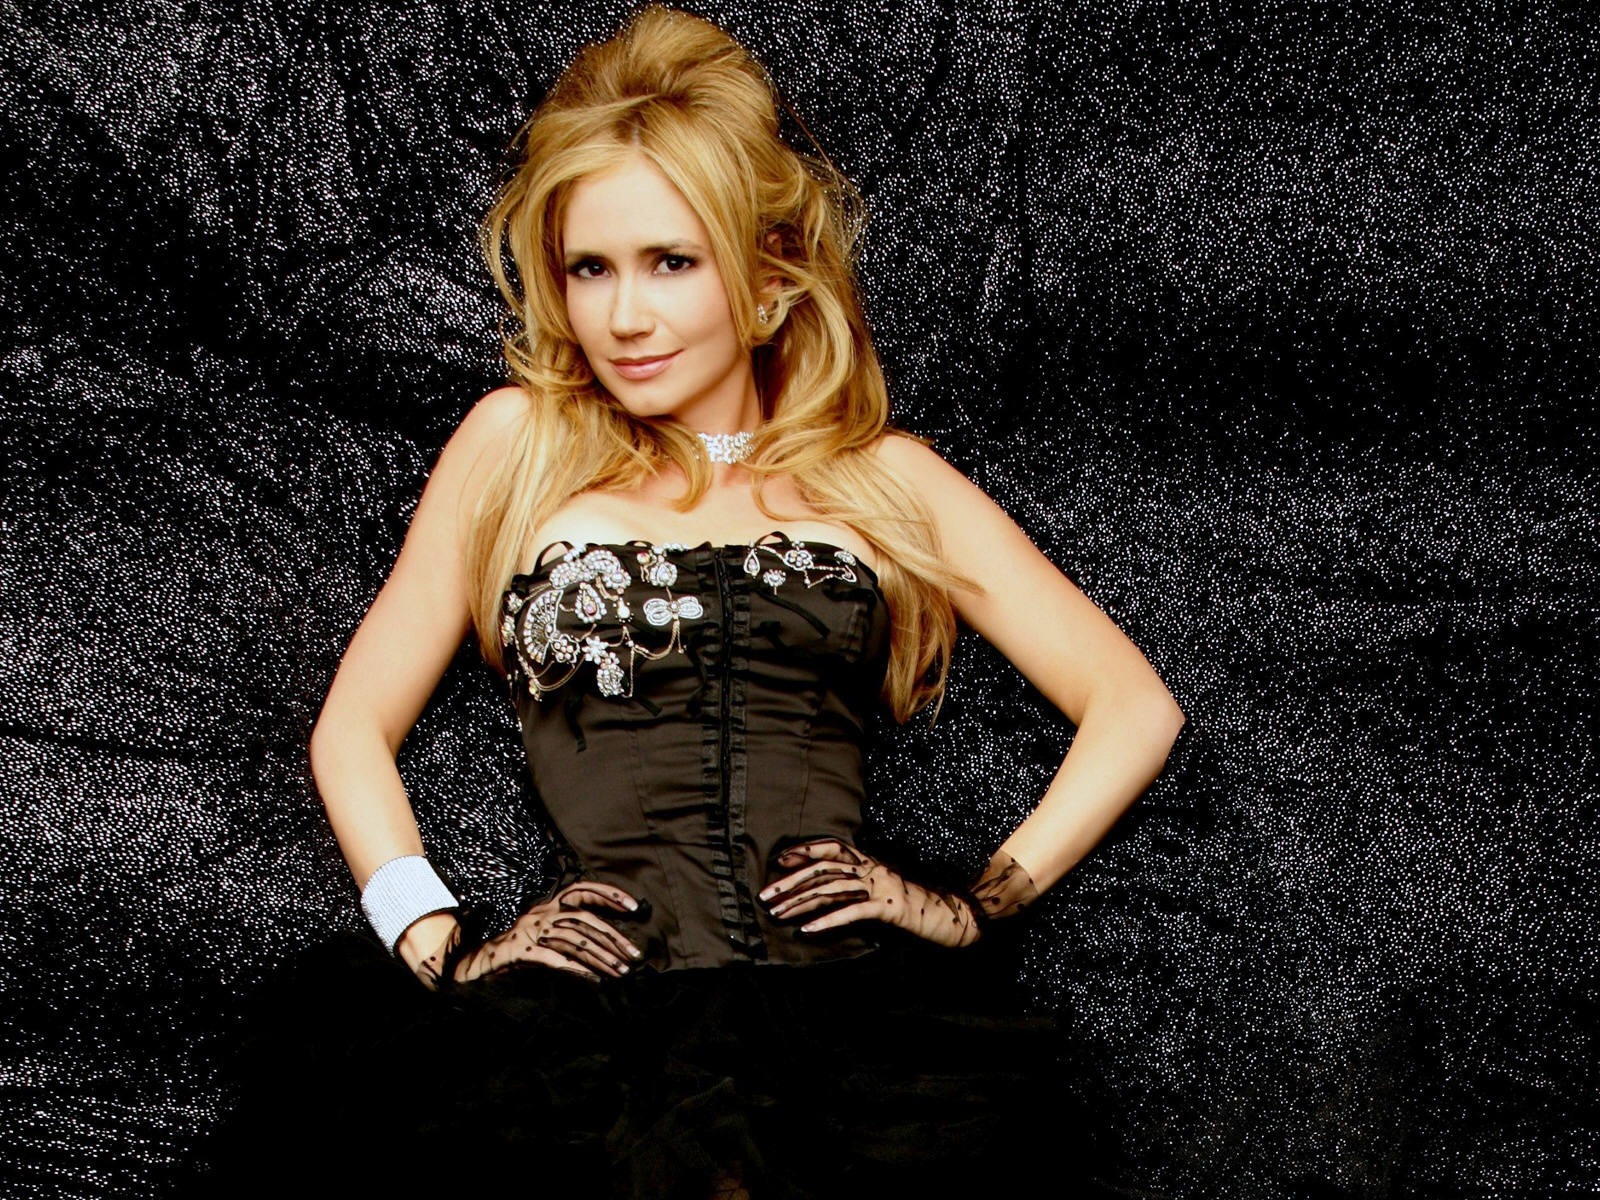 Ashley Jones #009 - 1600x1200 Wallpapers Pictures Photos Images